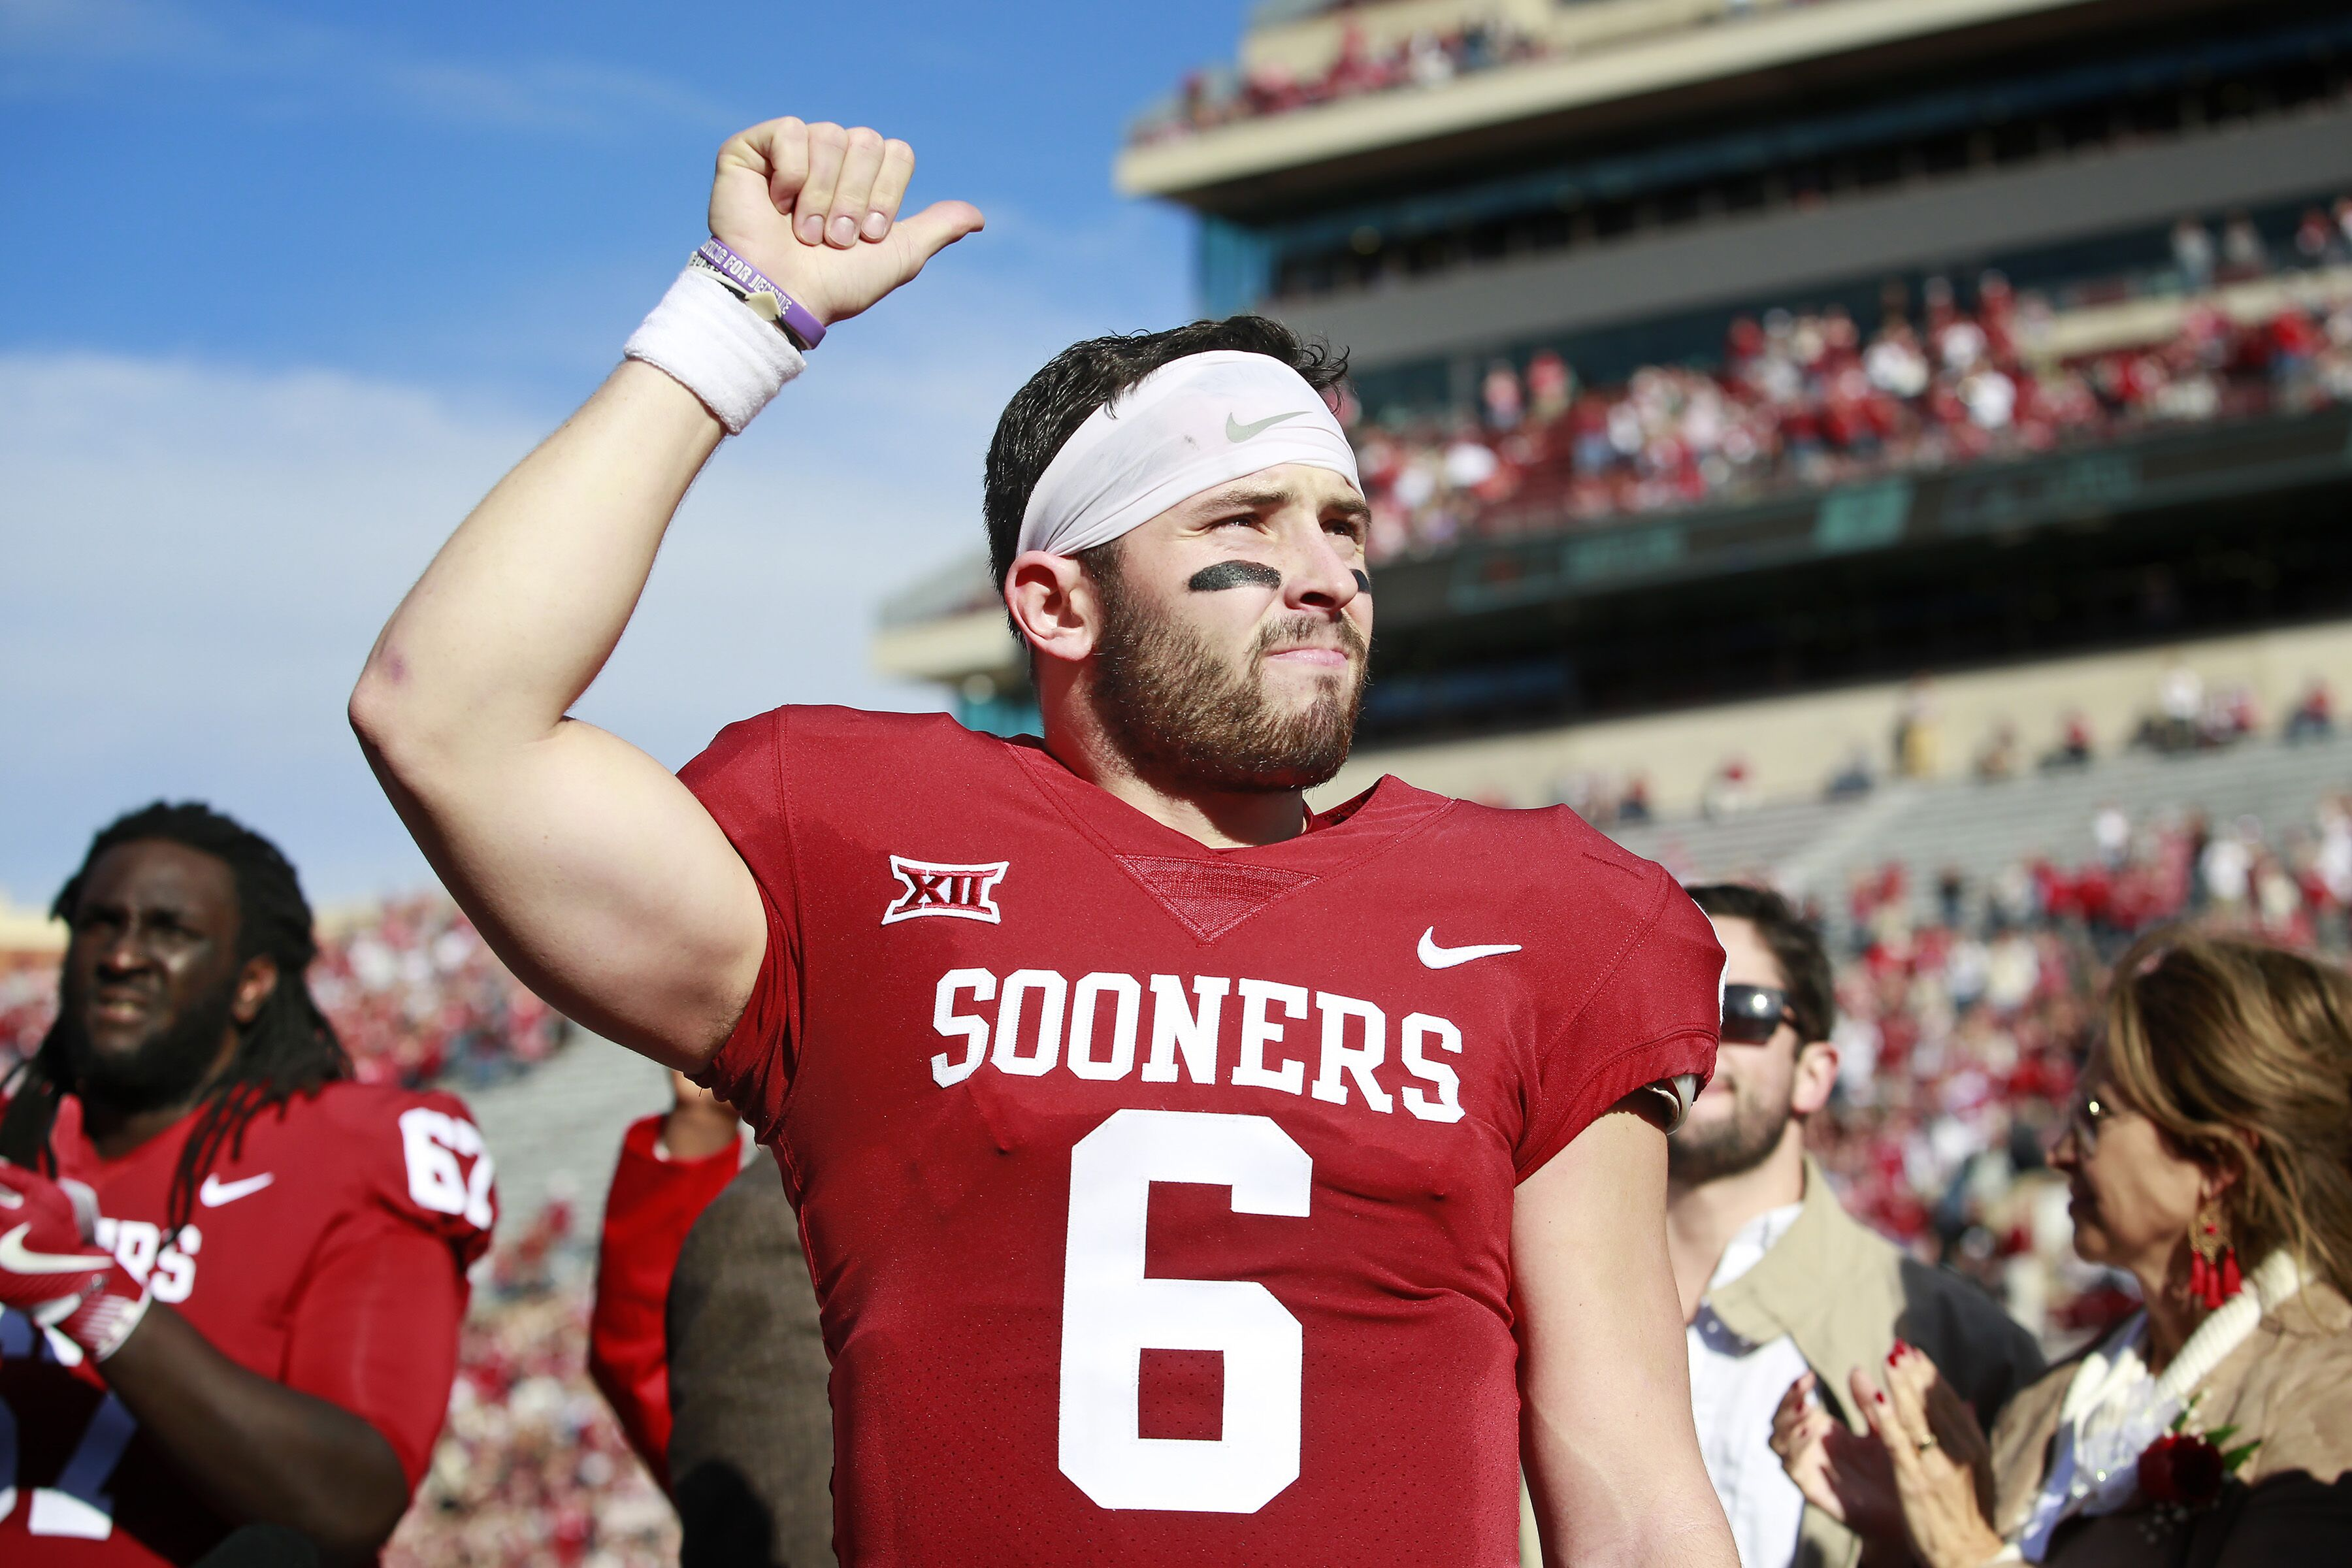 Oh and she said yes!!! Baker Mayfield the hopeful future of the Cleveland Browns franchise just made some major life plans for the future by getting